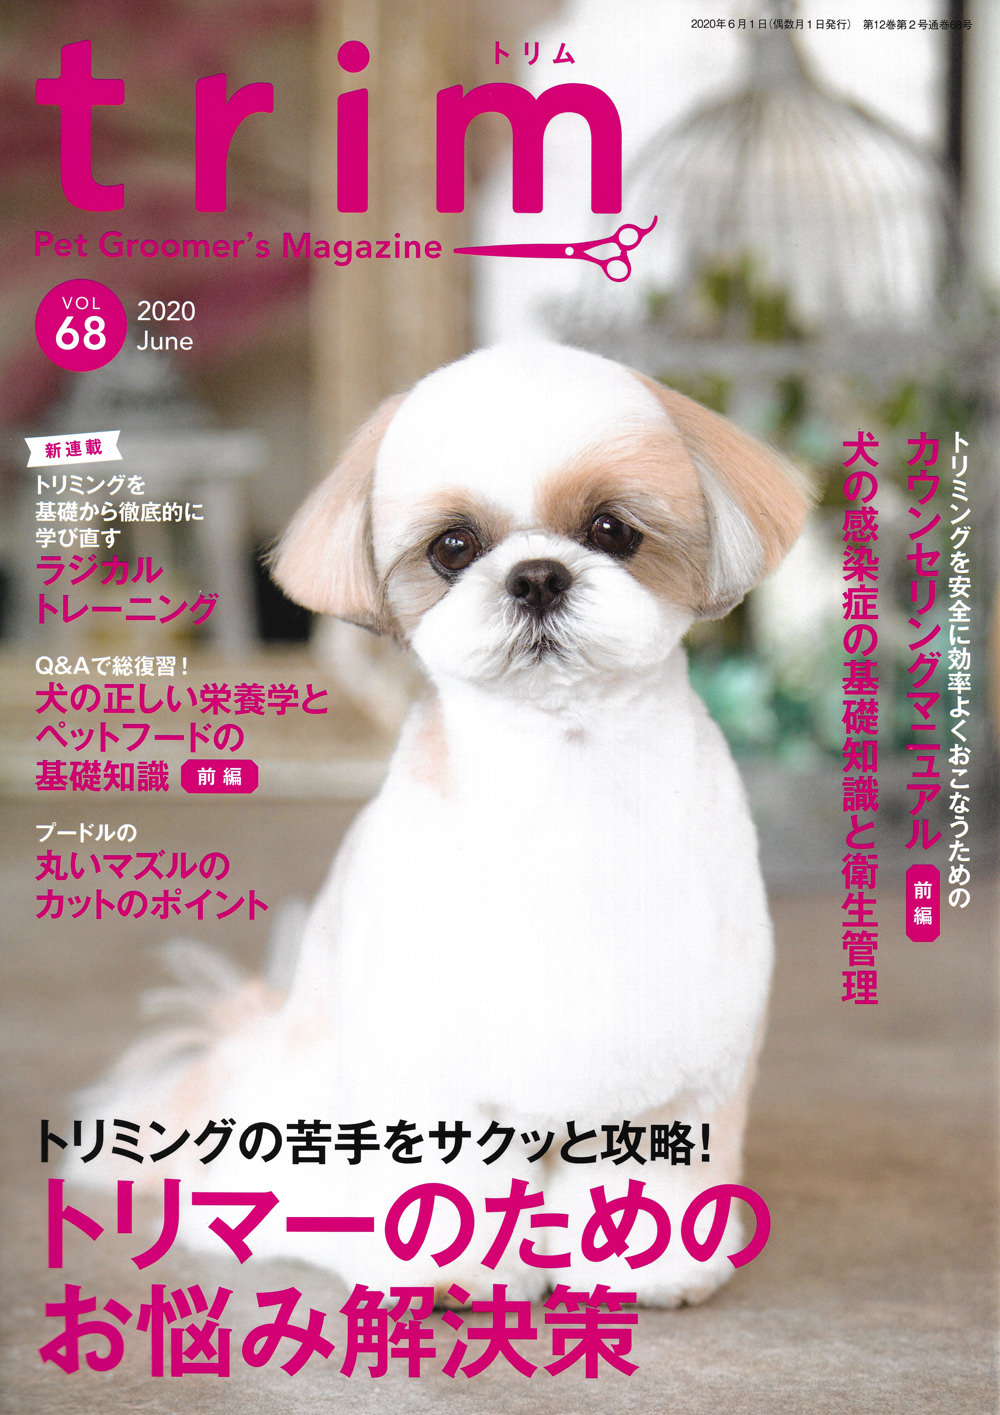 trim Pet Groomer's Magazine VOL68